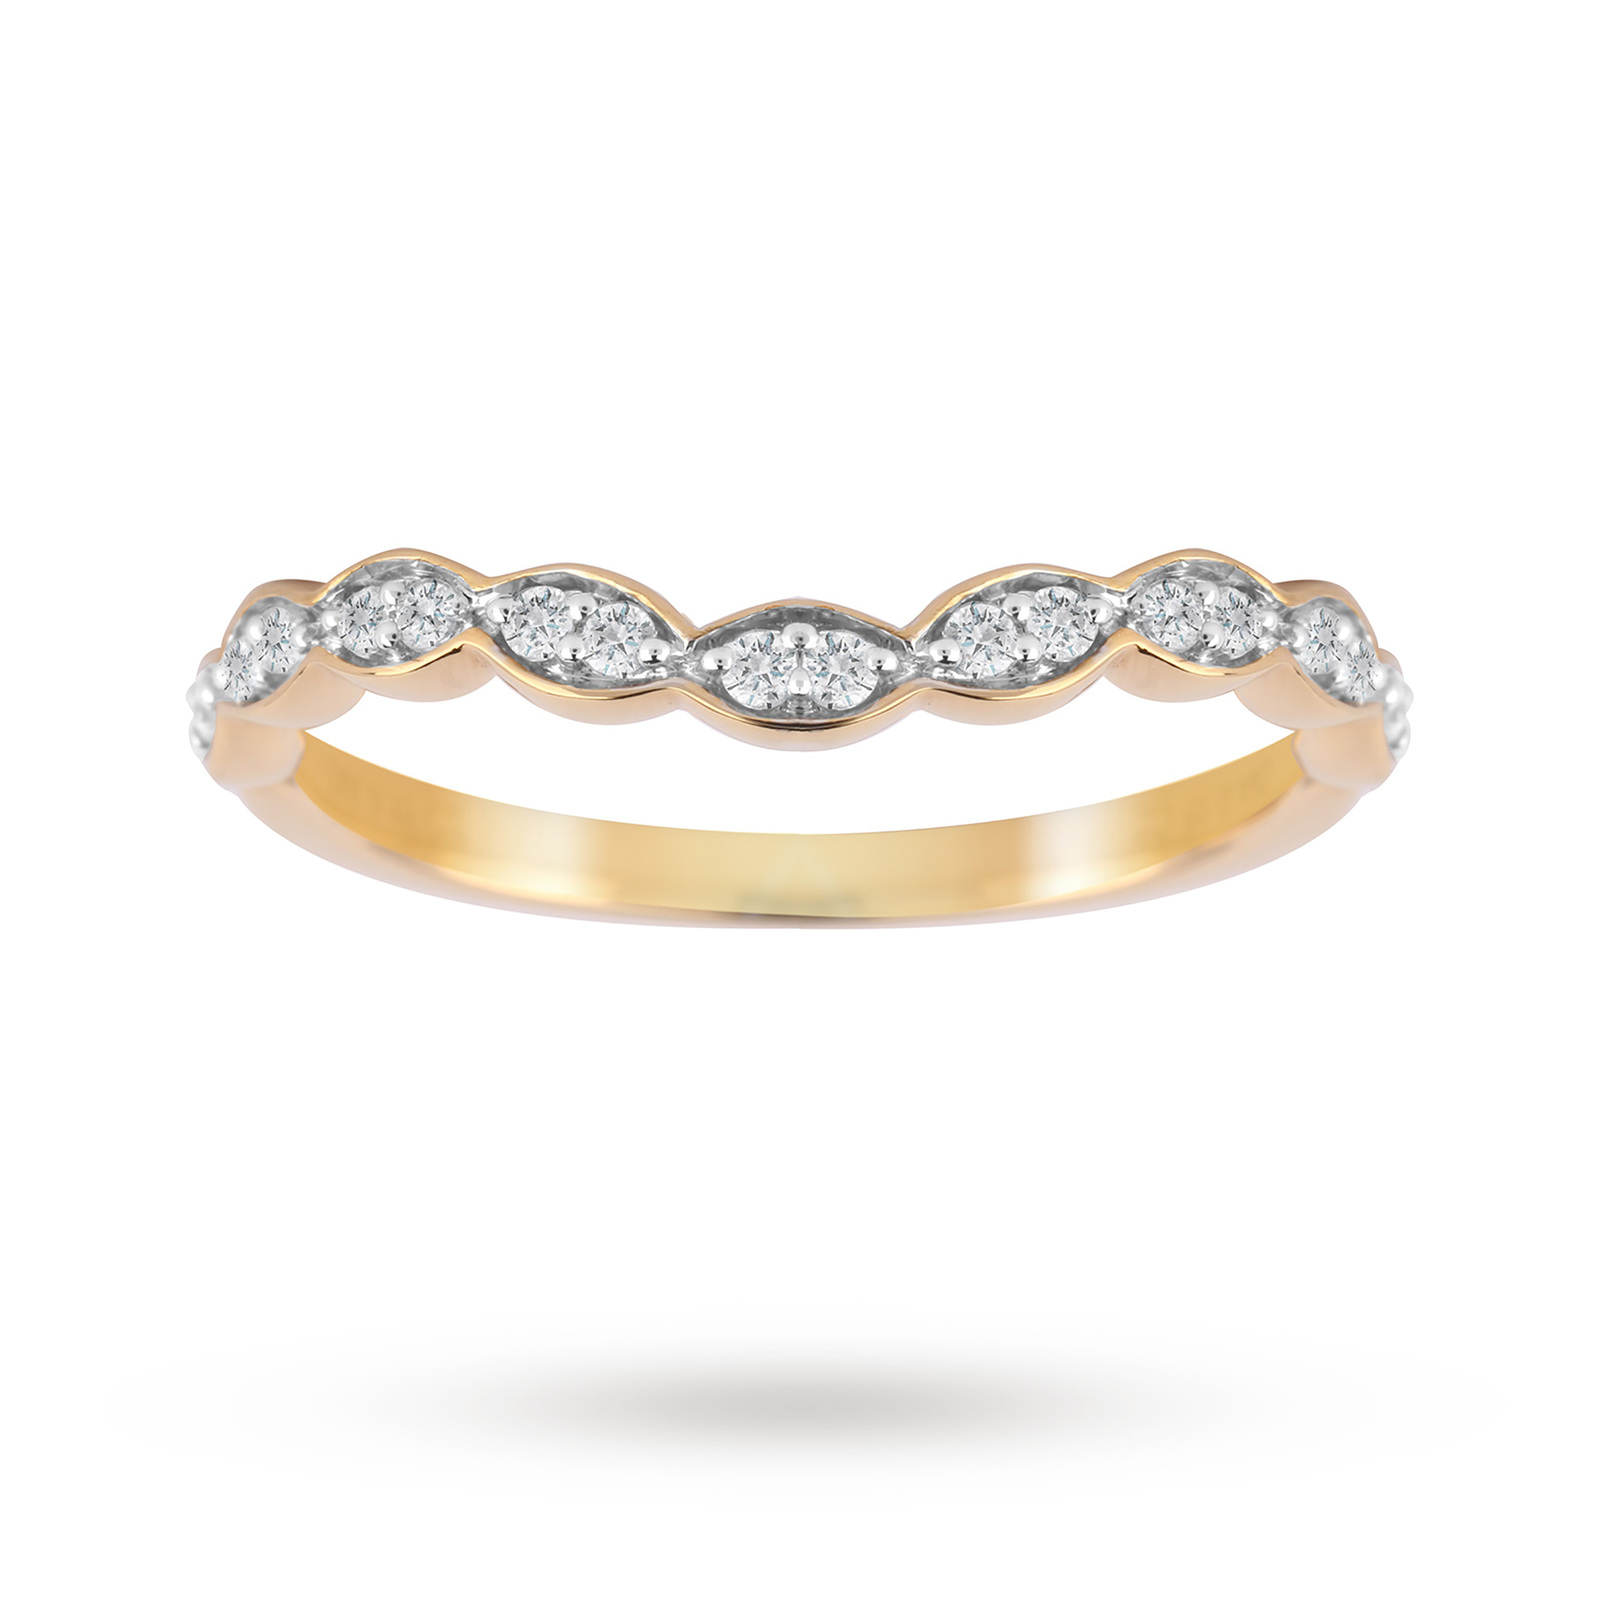 Jenny Packham 18ct Yellow Gold 0.15cttw Dip Band Ring - Ring Size K